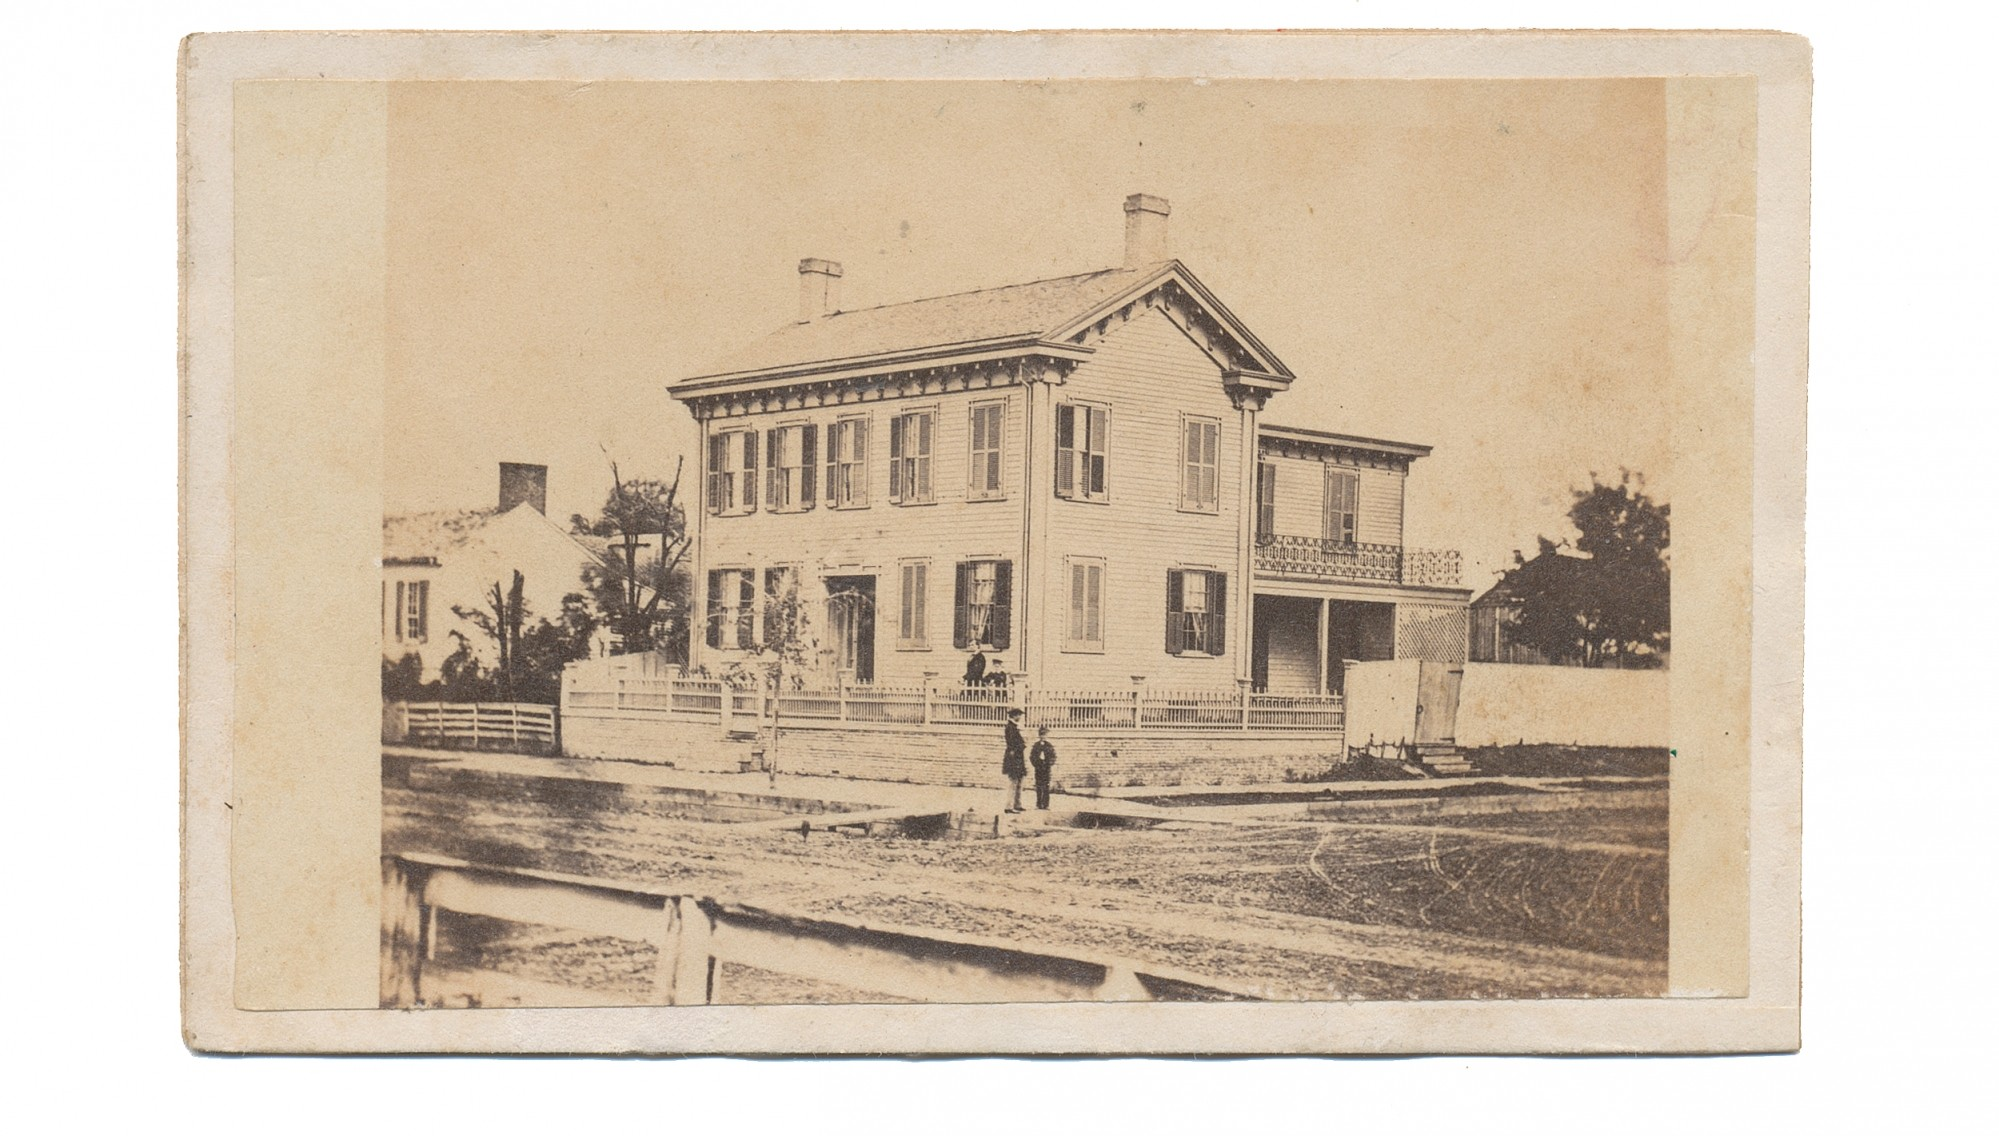 CDV VIEW OF THE LINCOLN HOME IN SPRINGFIELD WITH ABE & SON IN THE FRONT YARD